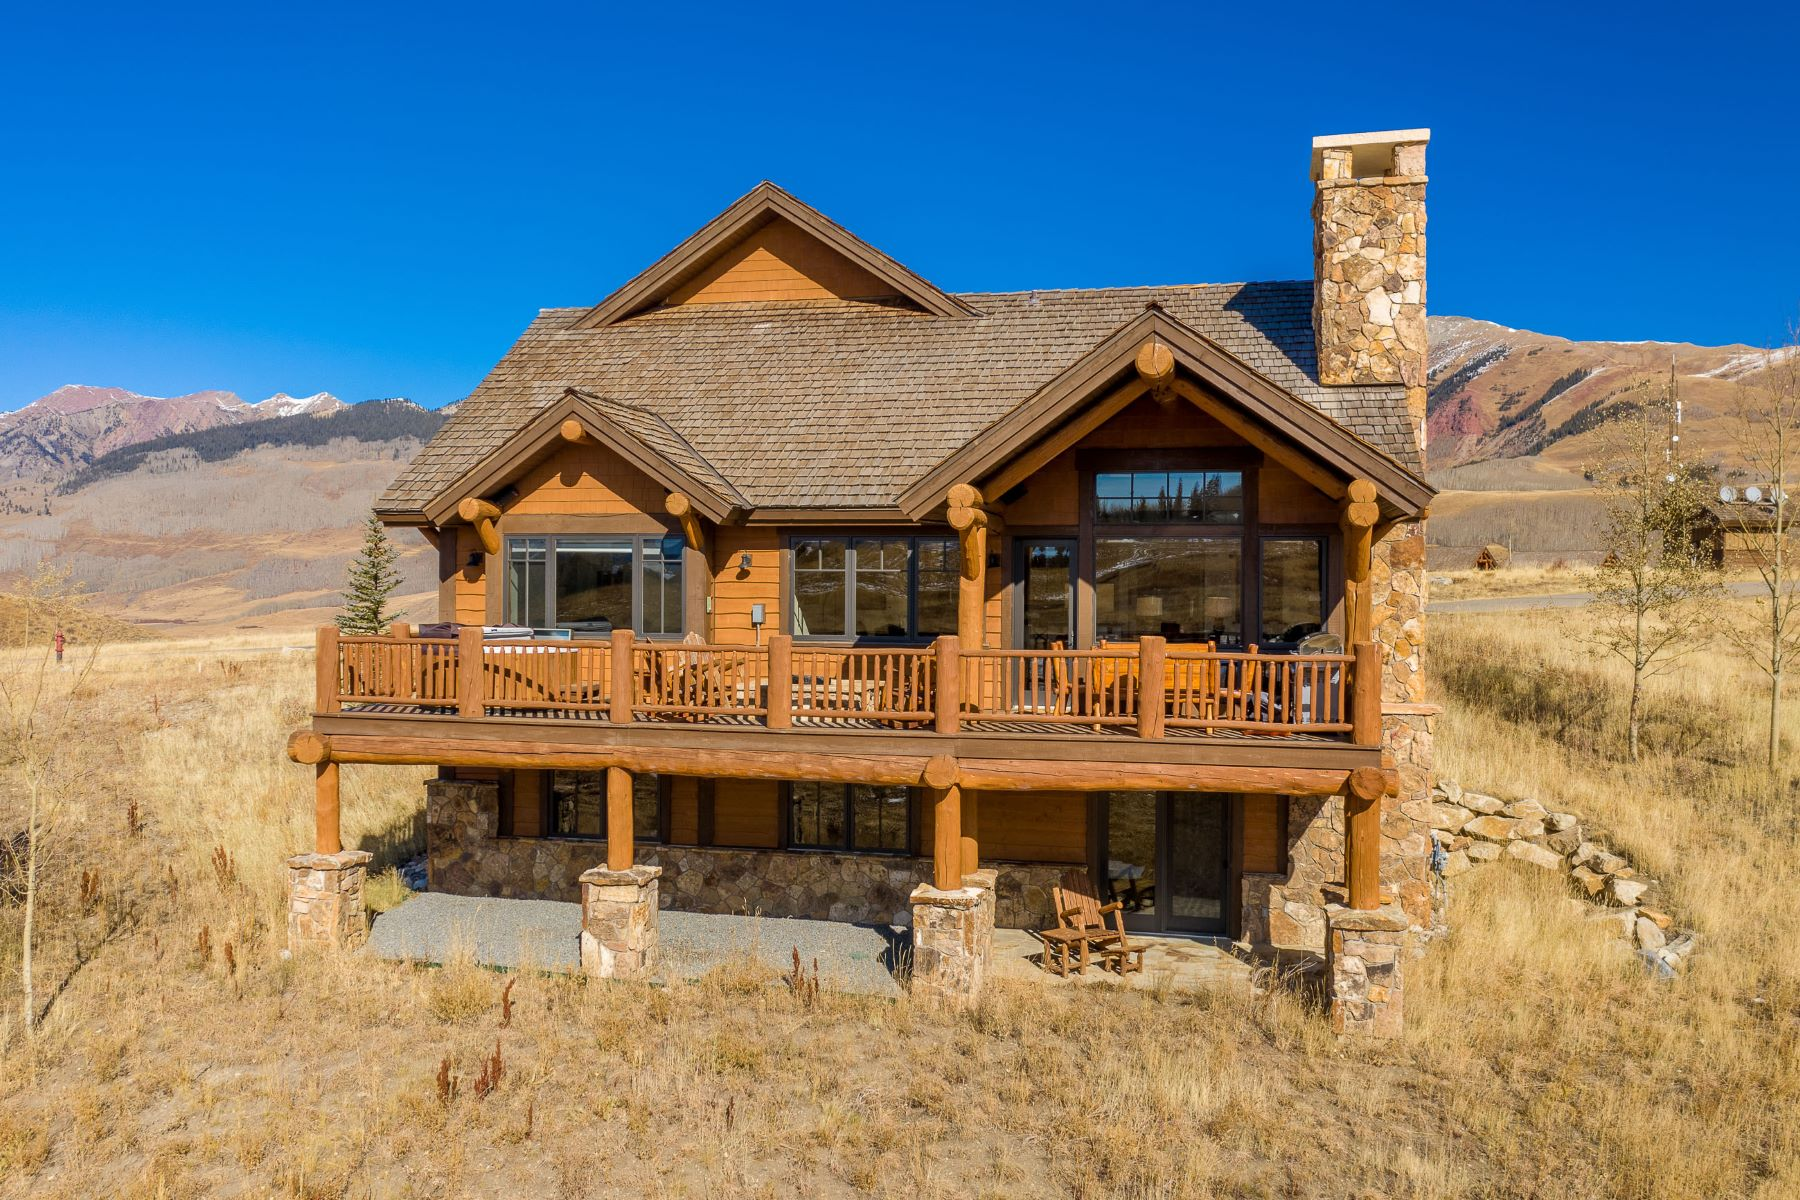 Single Family Homes for Sale at 4 Appaloosa - Wildhorse at Prospect 4 Appaloosa Road Mount Crested Butte, Colorado 81225 United States